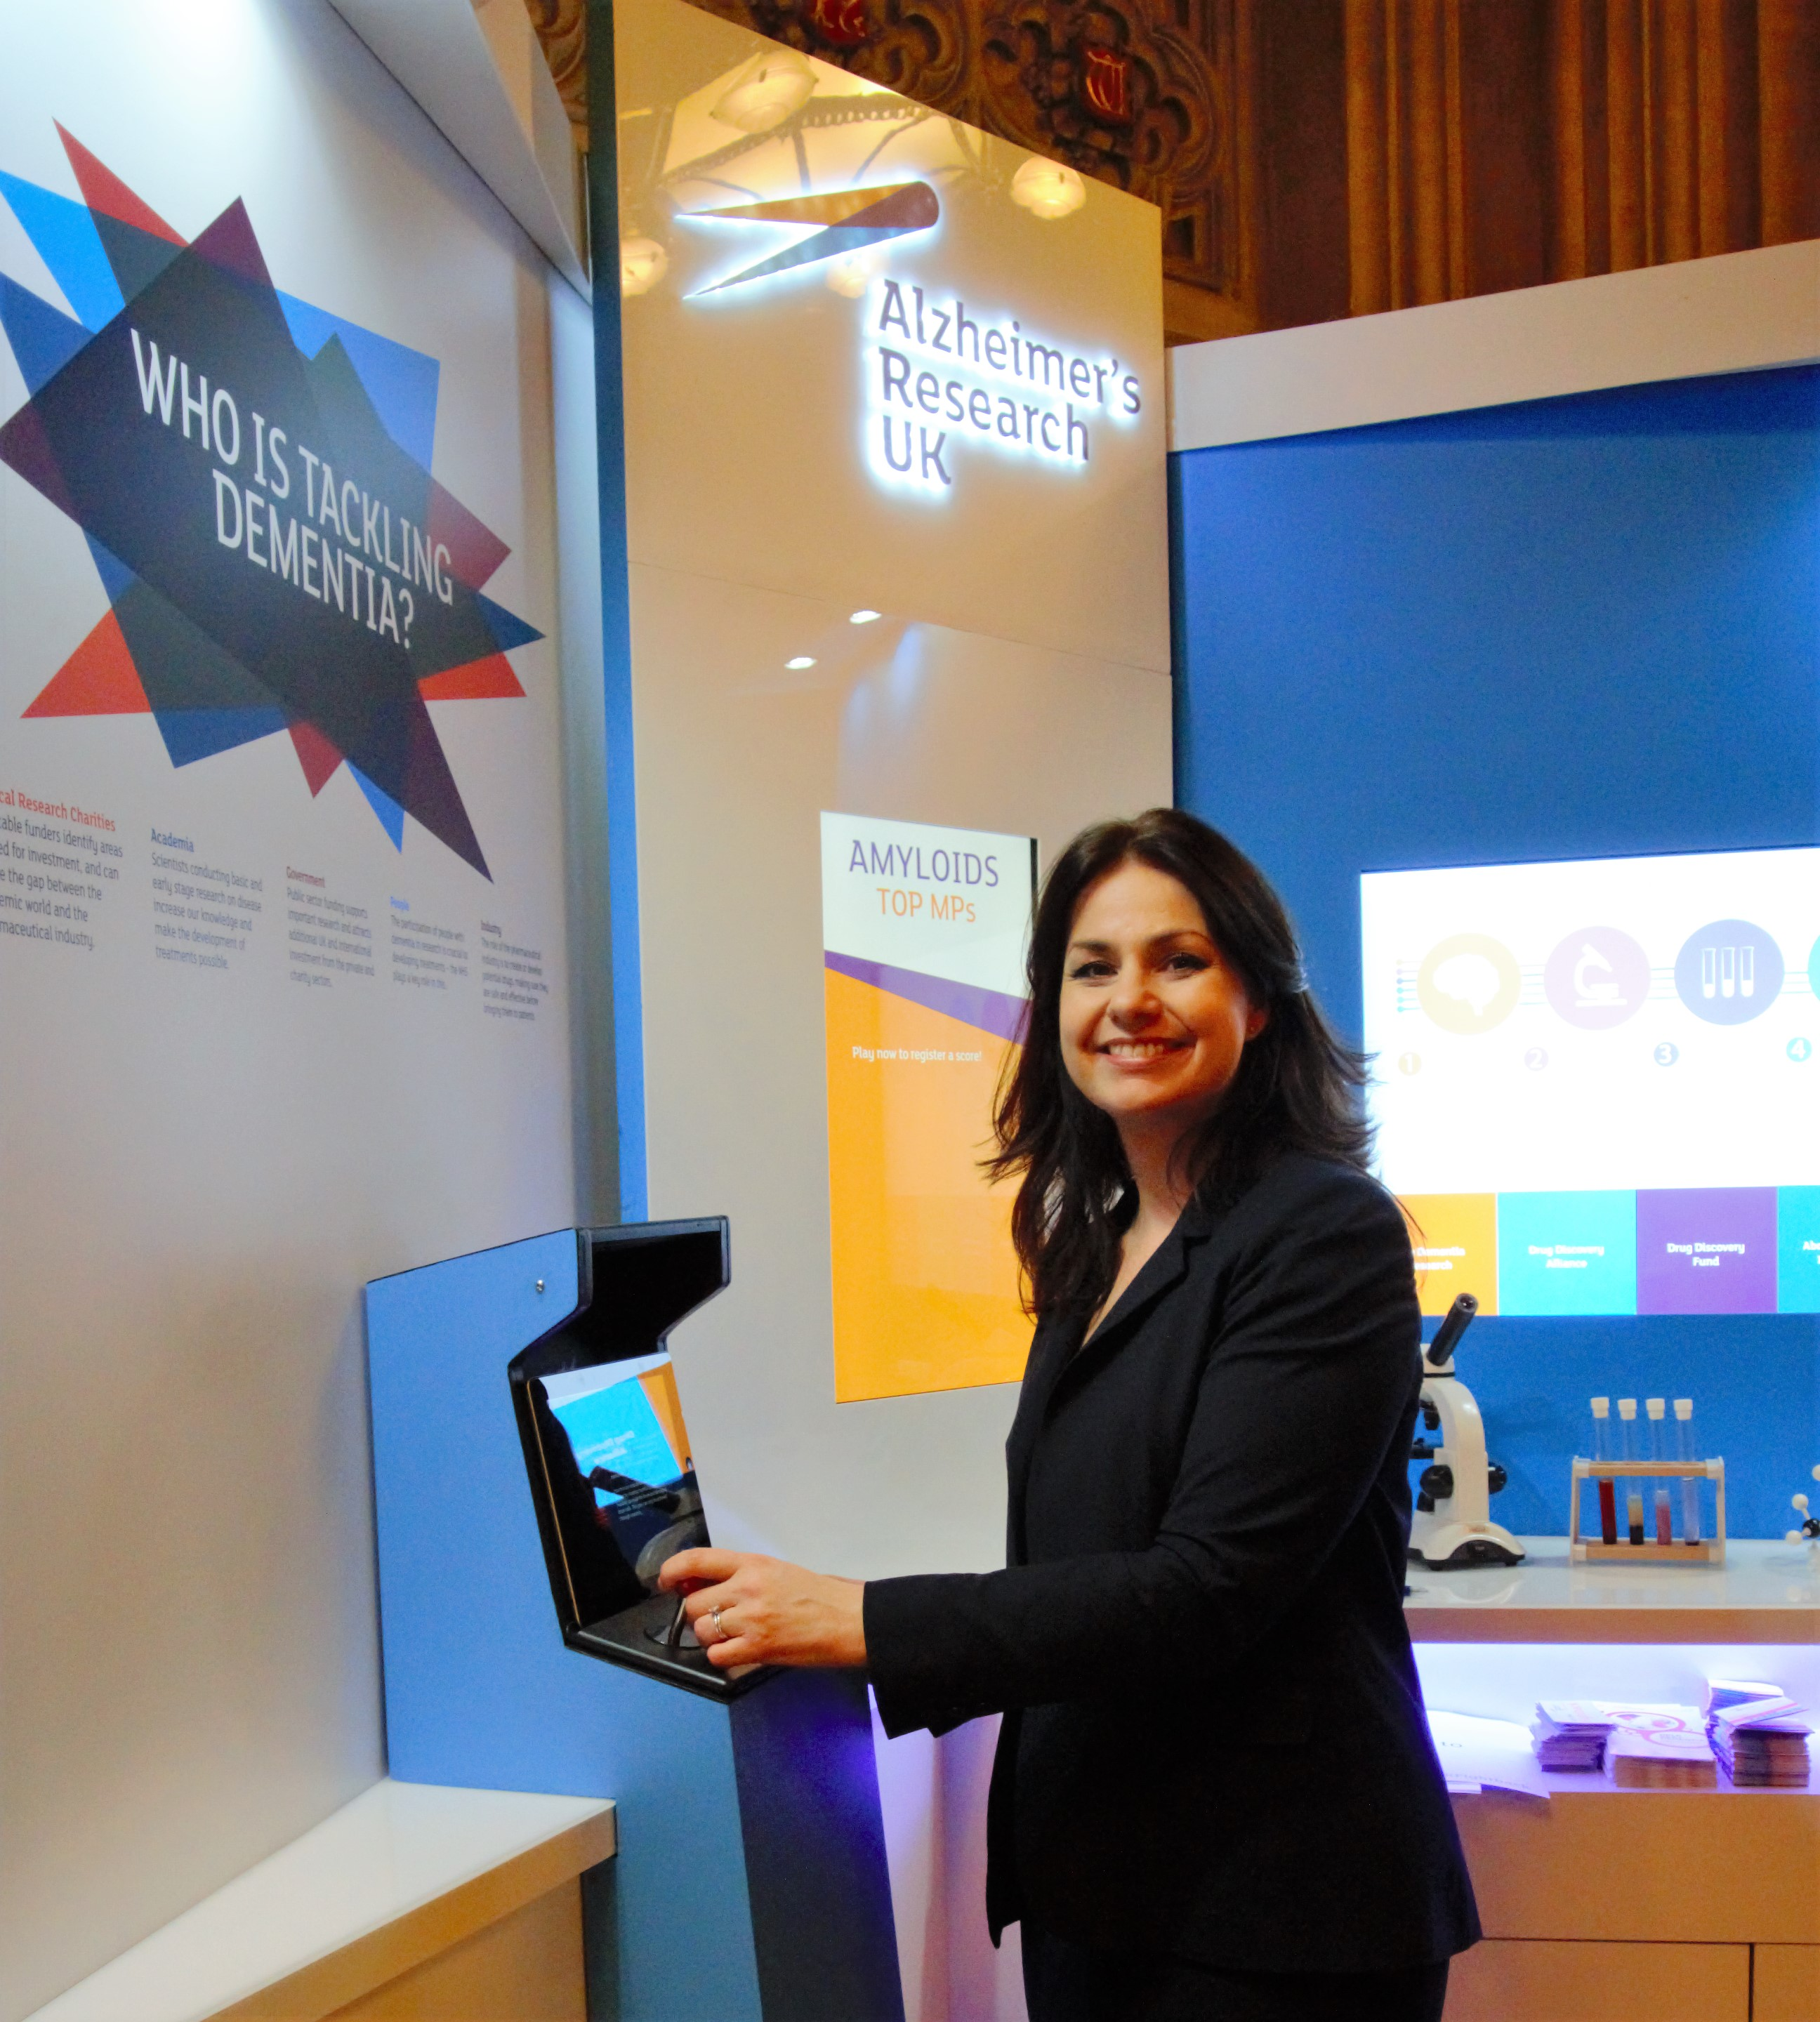 Cambridgeshire MP Heidi Allen visited the ARUK stand in Westminster